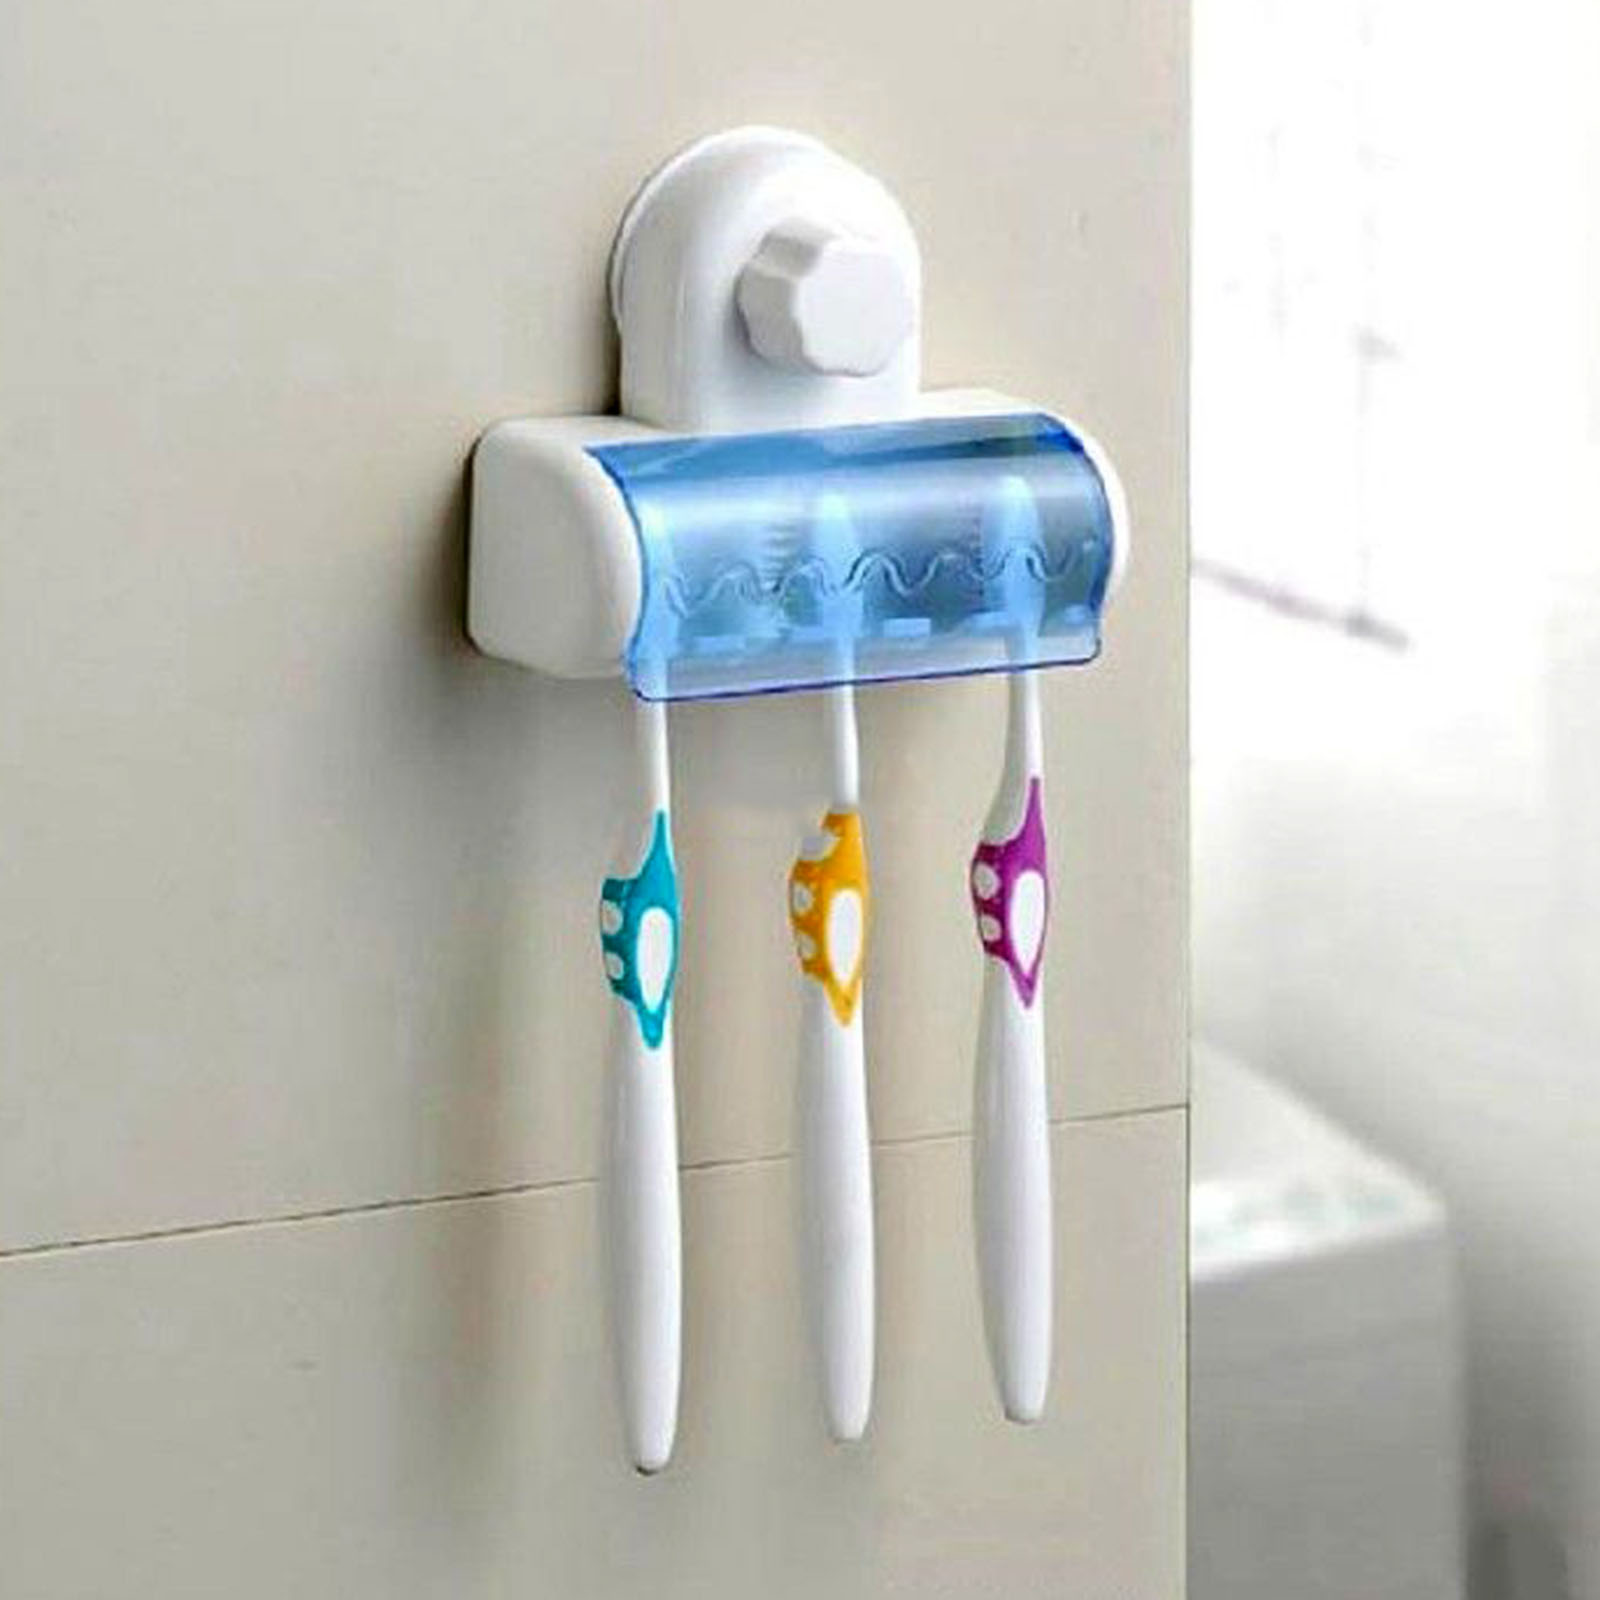 Multifunctional Bathroom Suction Cup Toothbrush SpinBrush Hanging Holder Stand Lidded 5 Racks toothbrush image